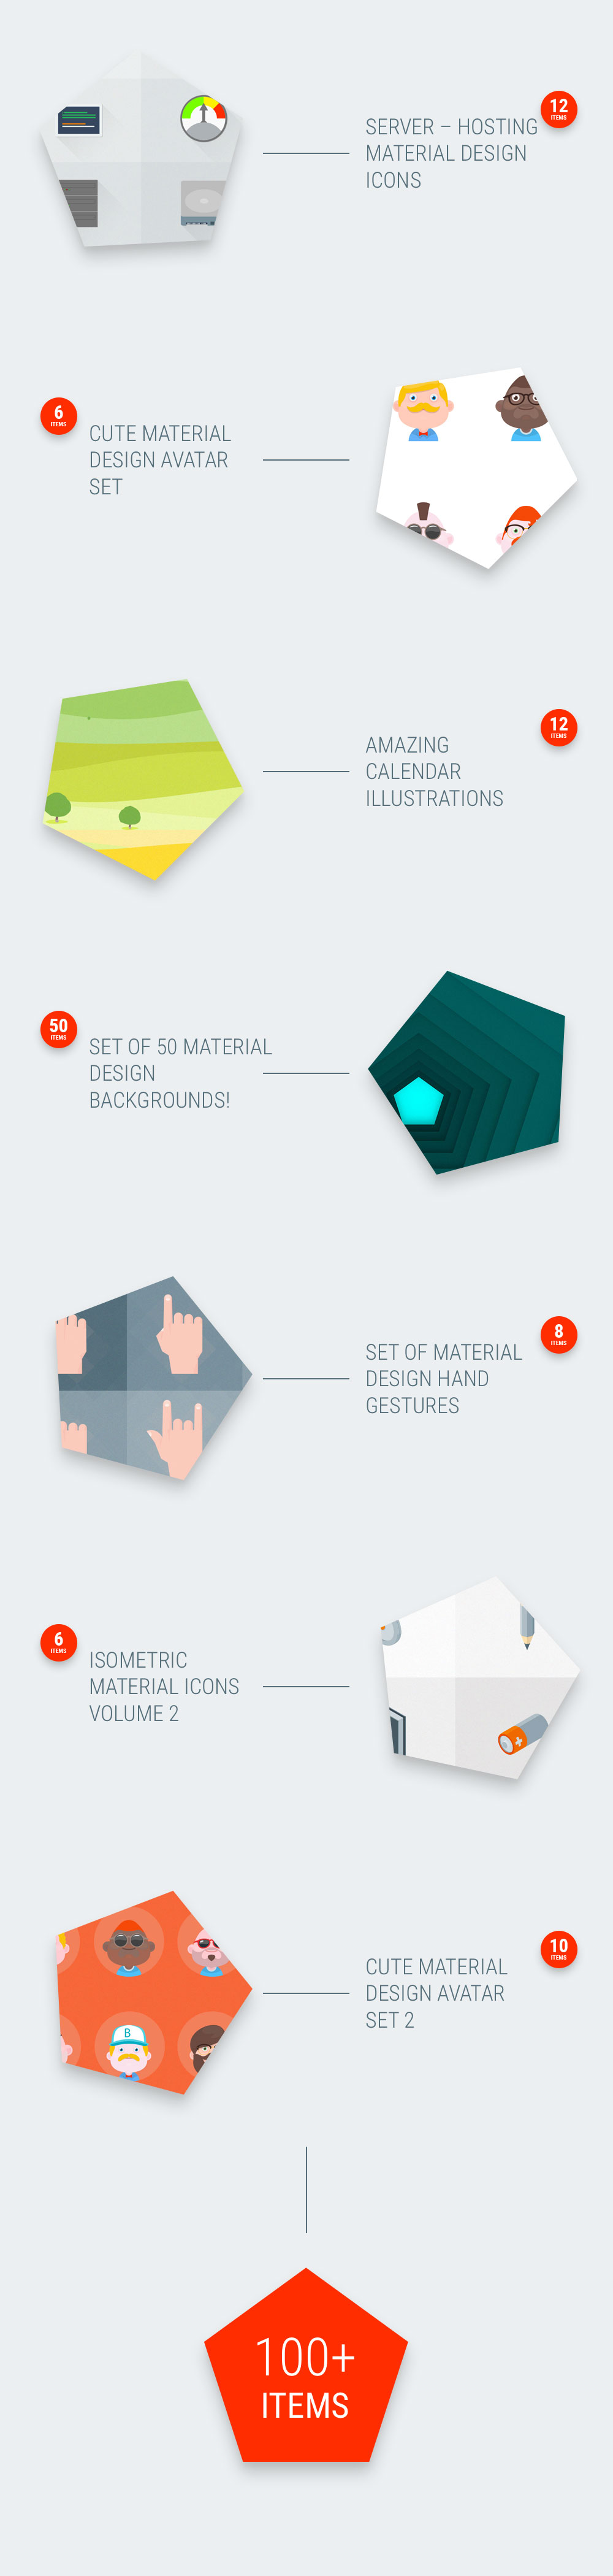 Material Design Bundle